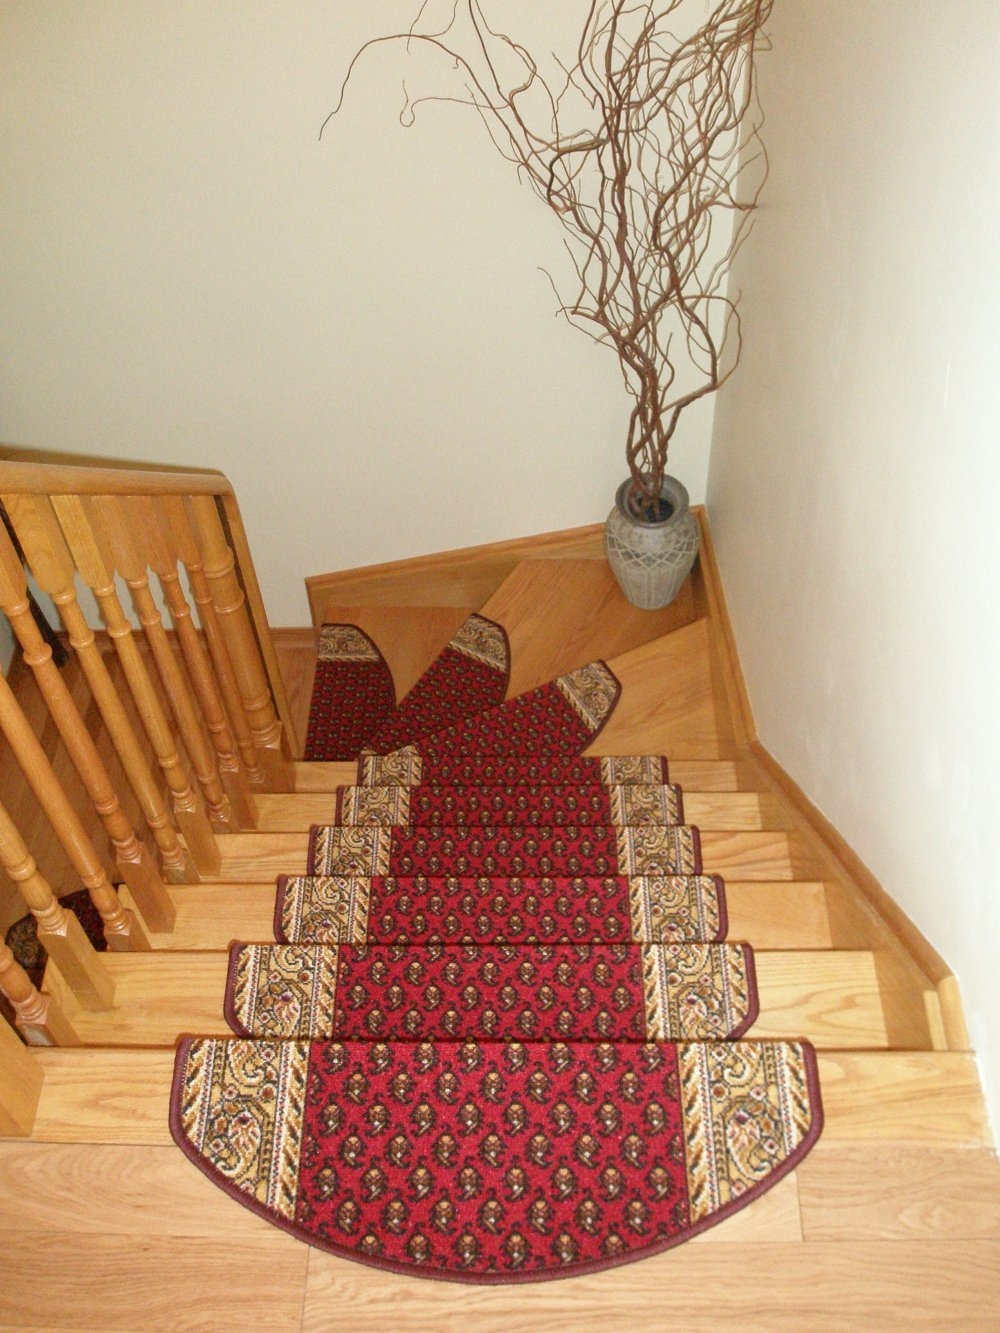 Popular Photo of Rugs For Staircases